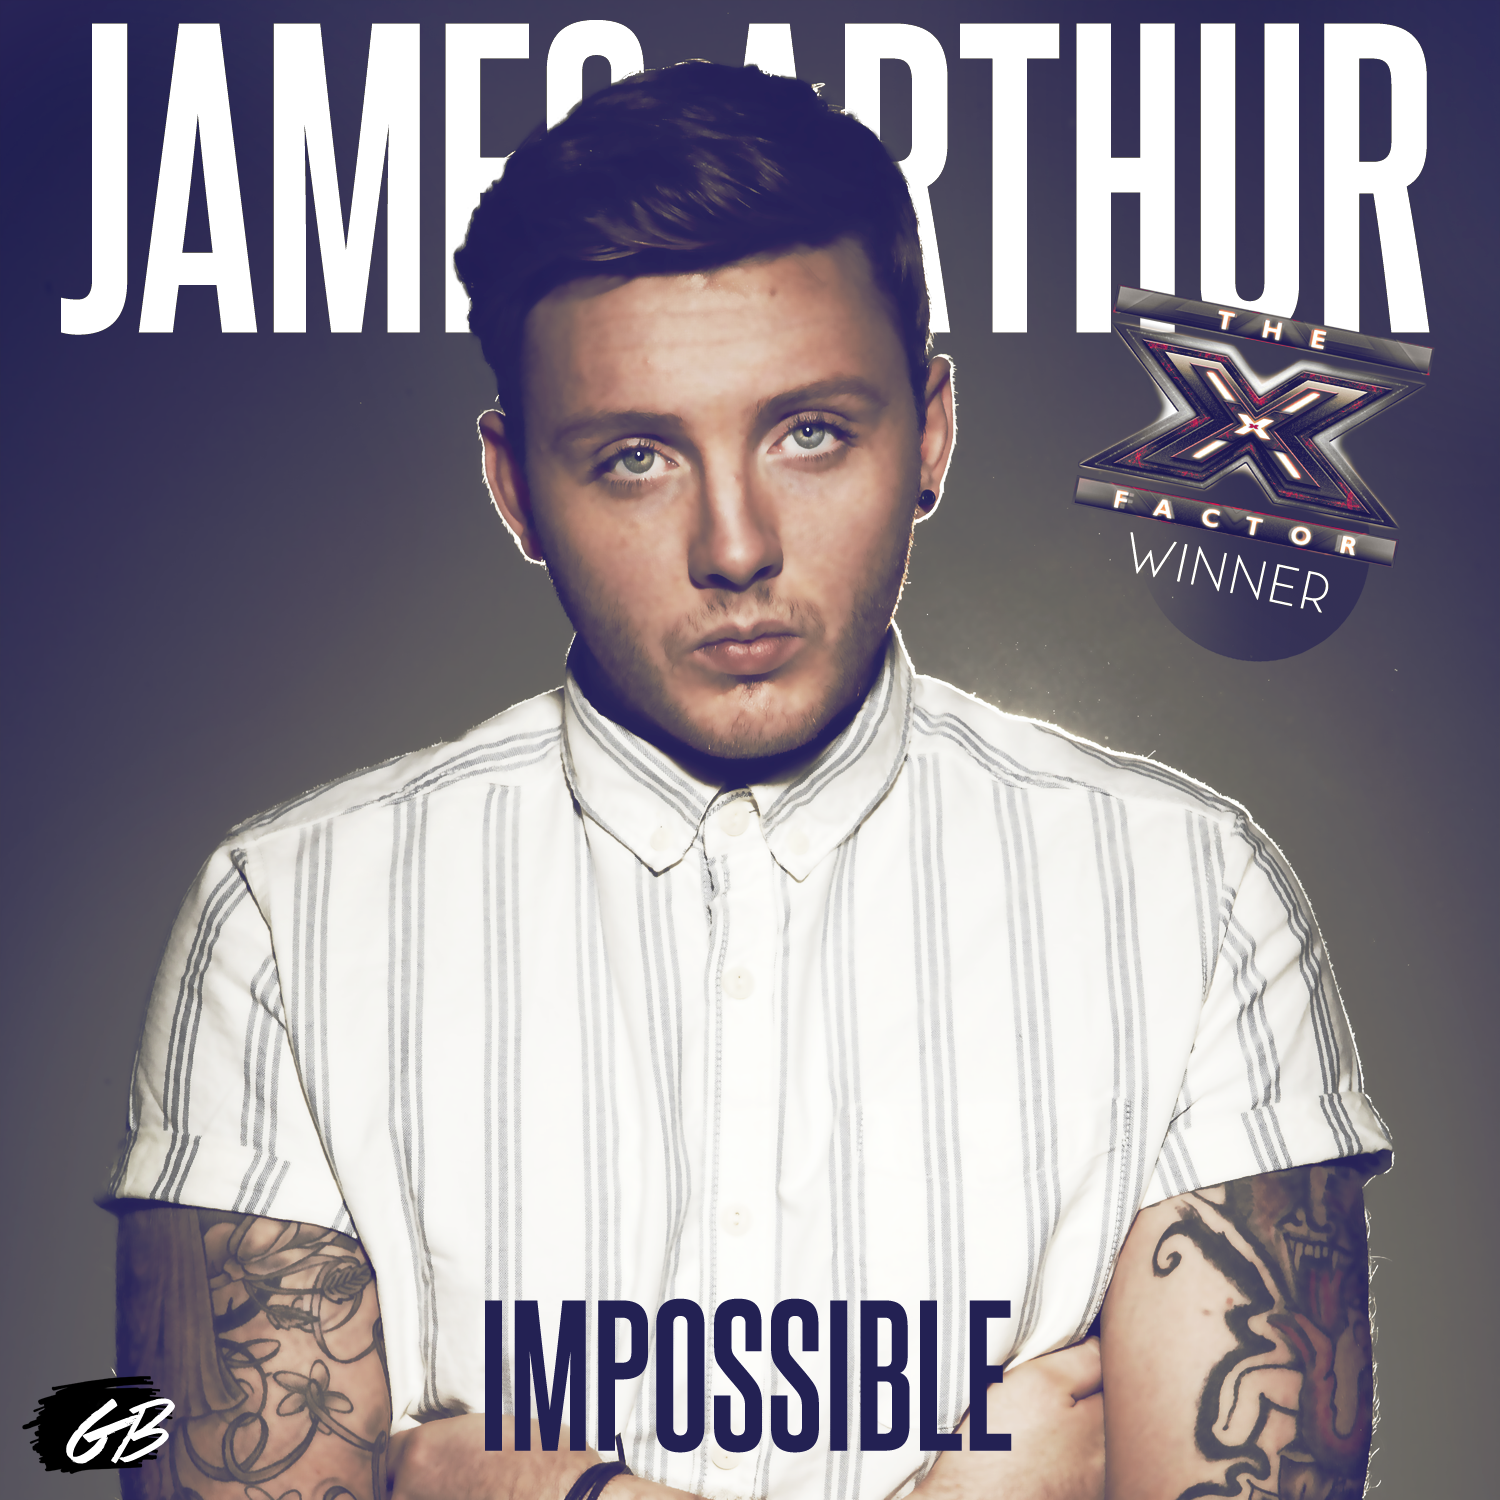 James arthur's 'impossible' becomes fastest-selling x factor.